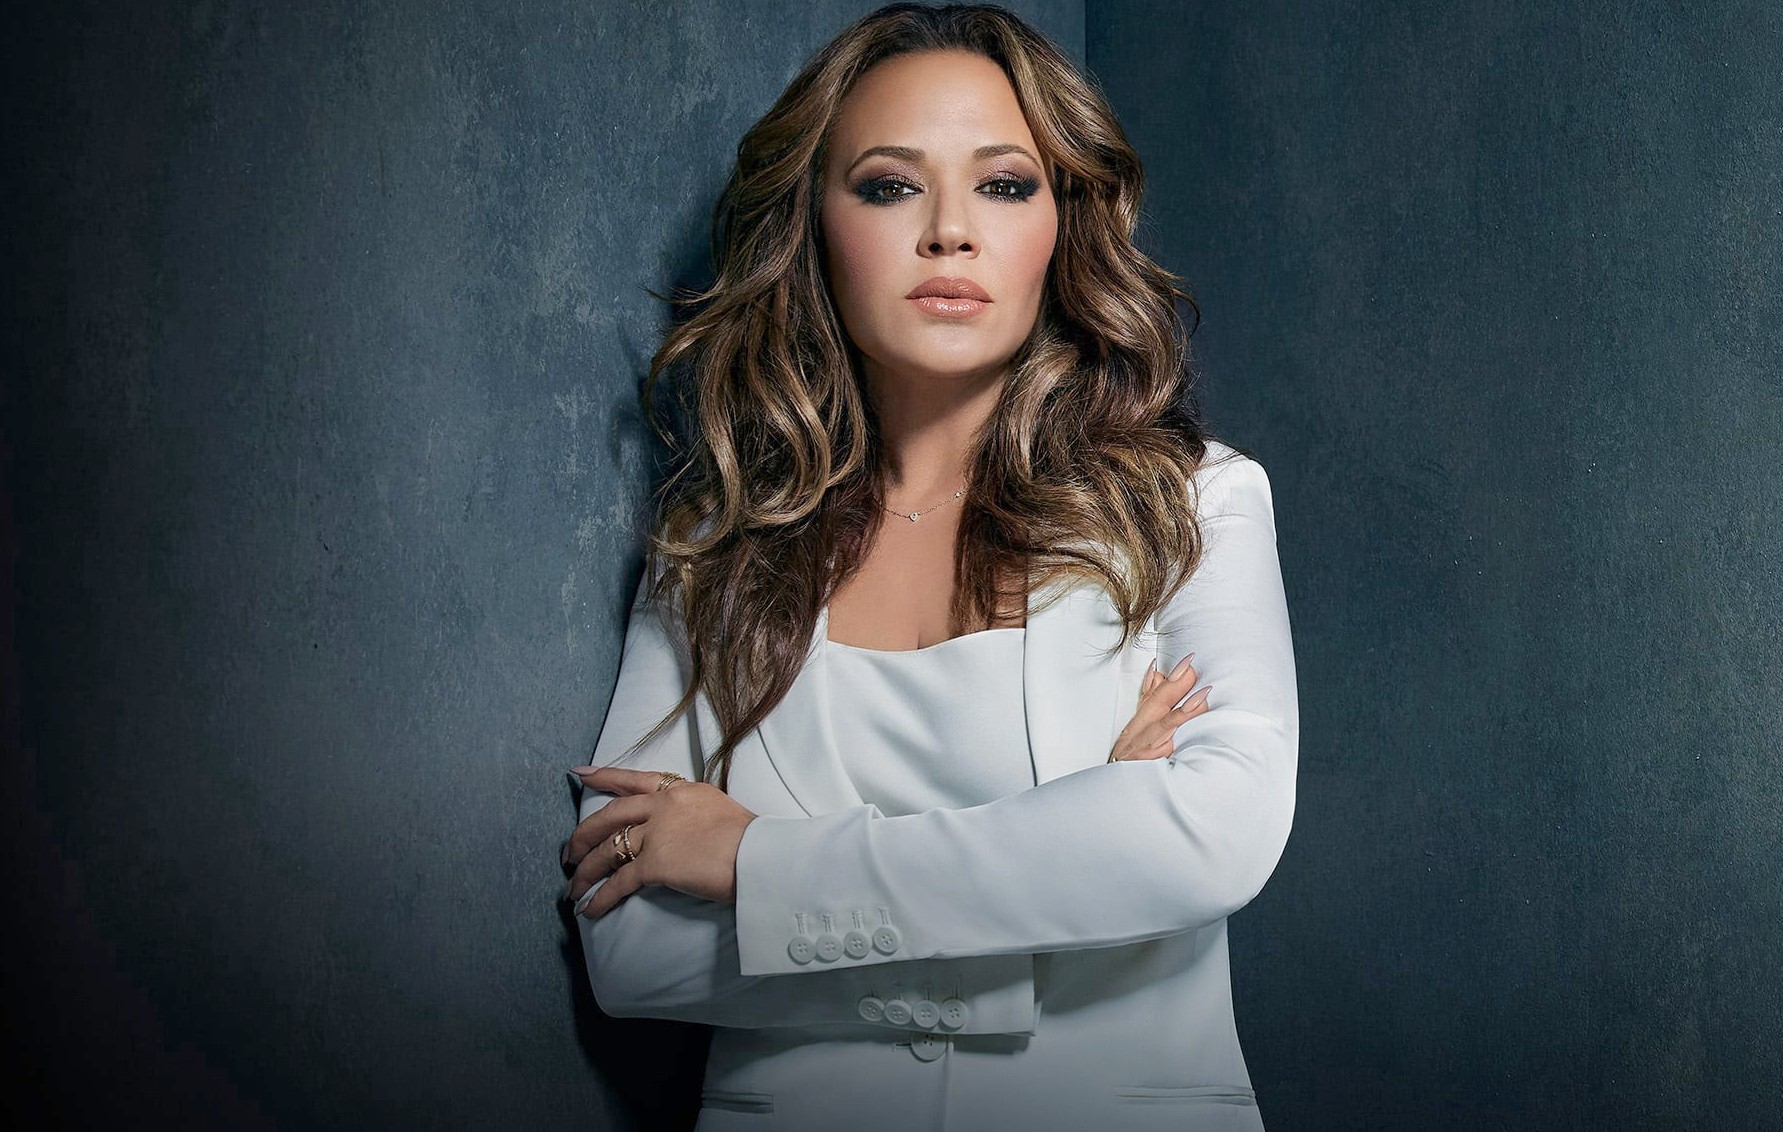 Leah Remini Famous For